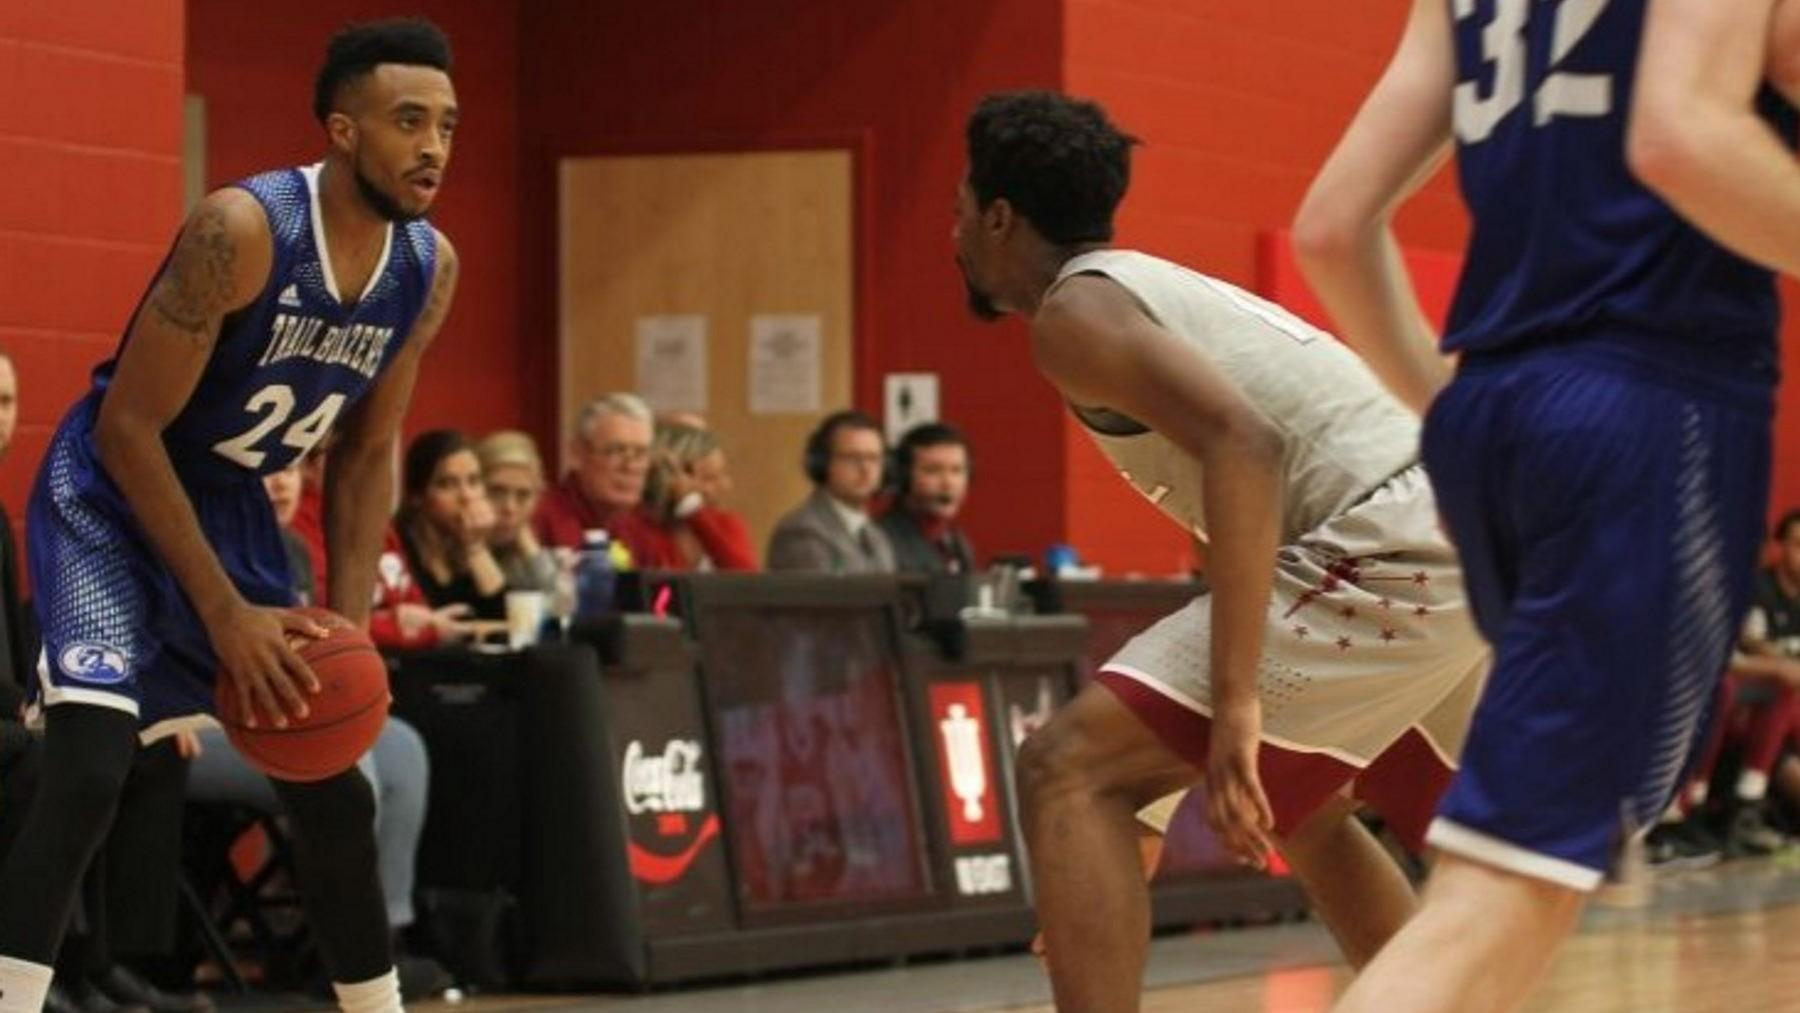 Trailblazers Fall Short Of Tough Red Wolves